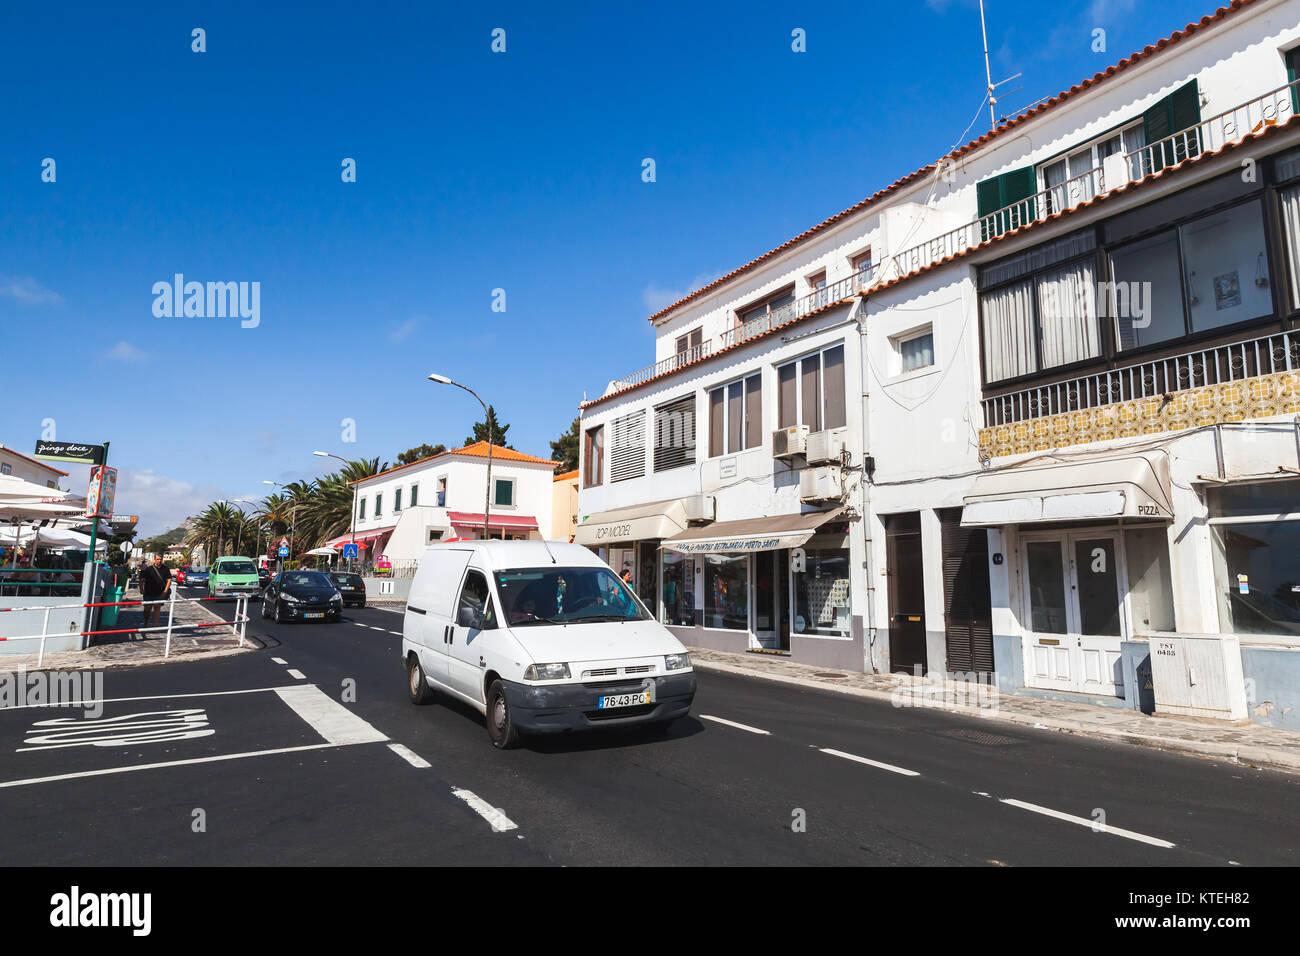 Vila Baleira, Portugal - August 18, 2017: Street view of Vila Baleira the only city and the capital of Porto Santo - Stock Image